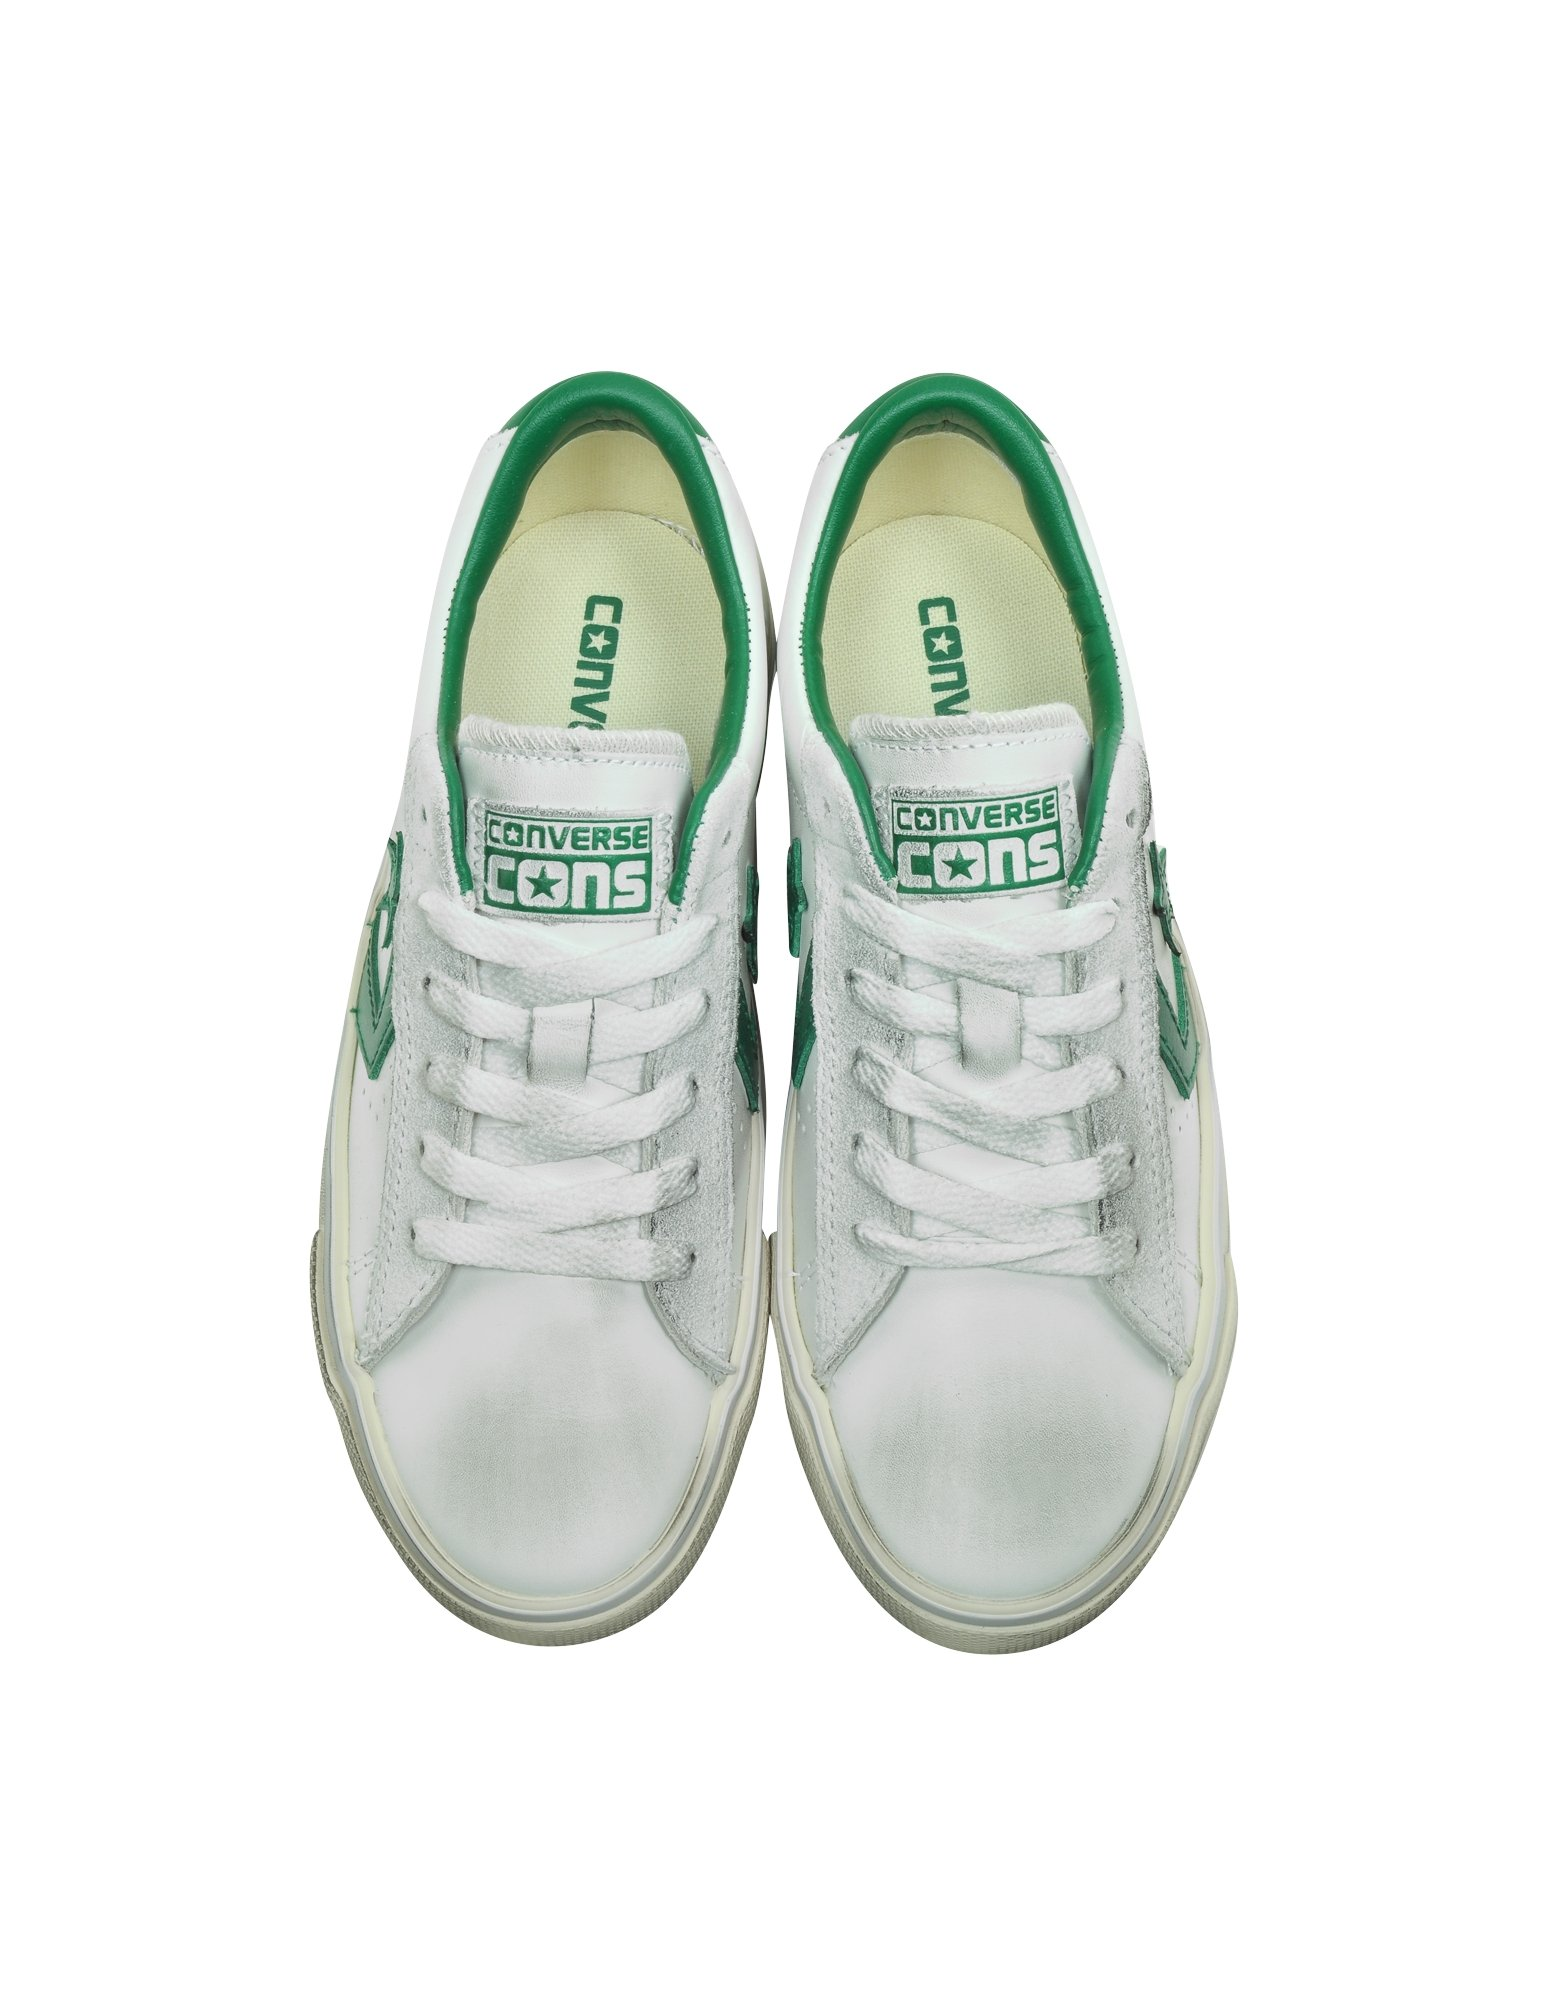 052ba7bc384c Converse Pro Leather Vulc Ox Off White Distressed Leather Unisex ...